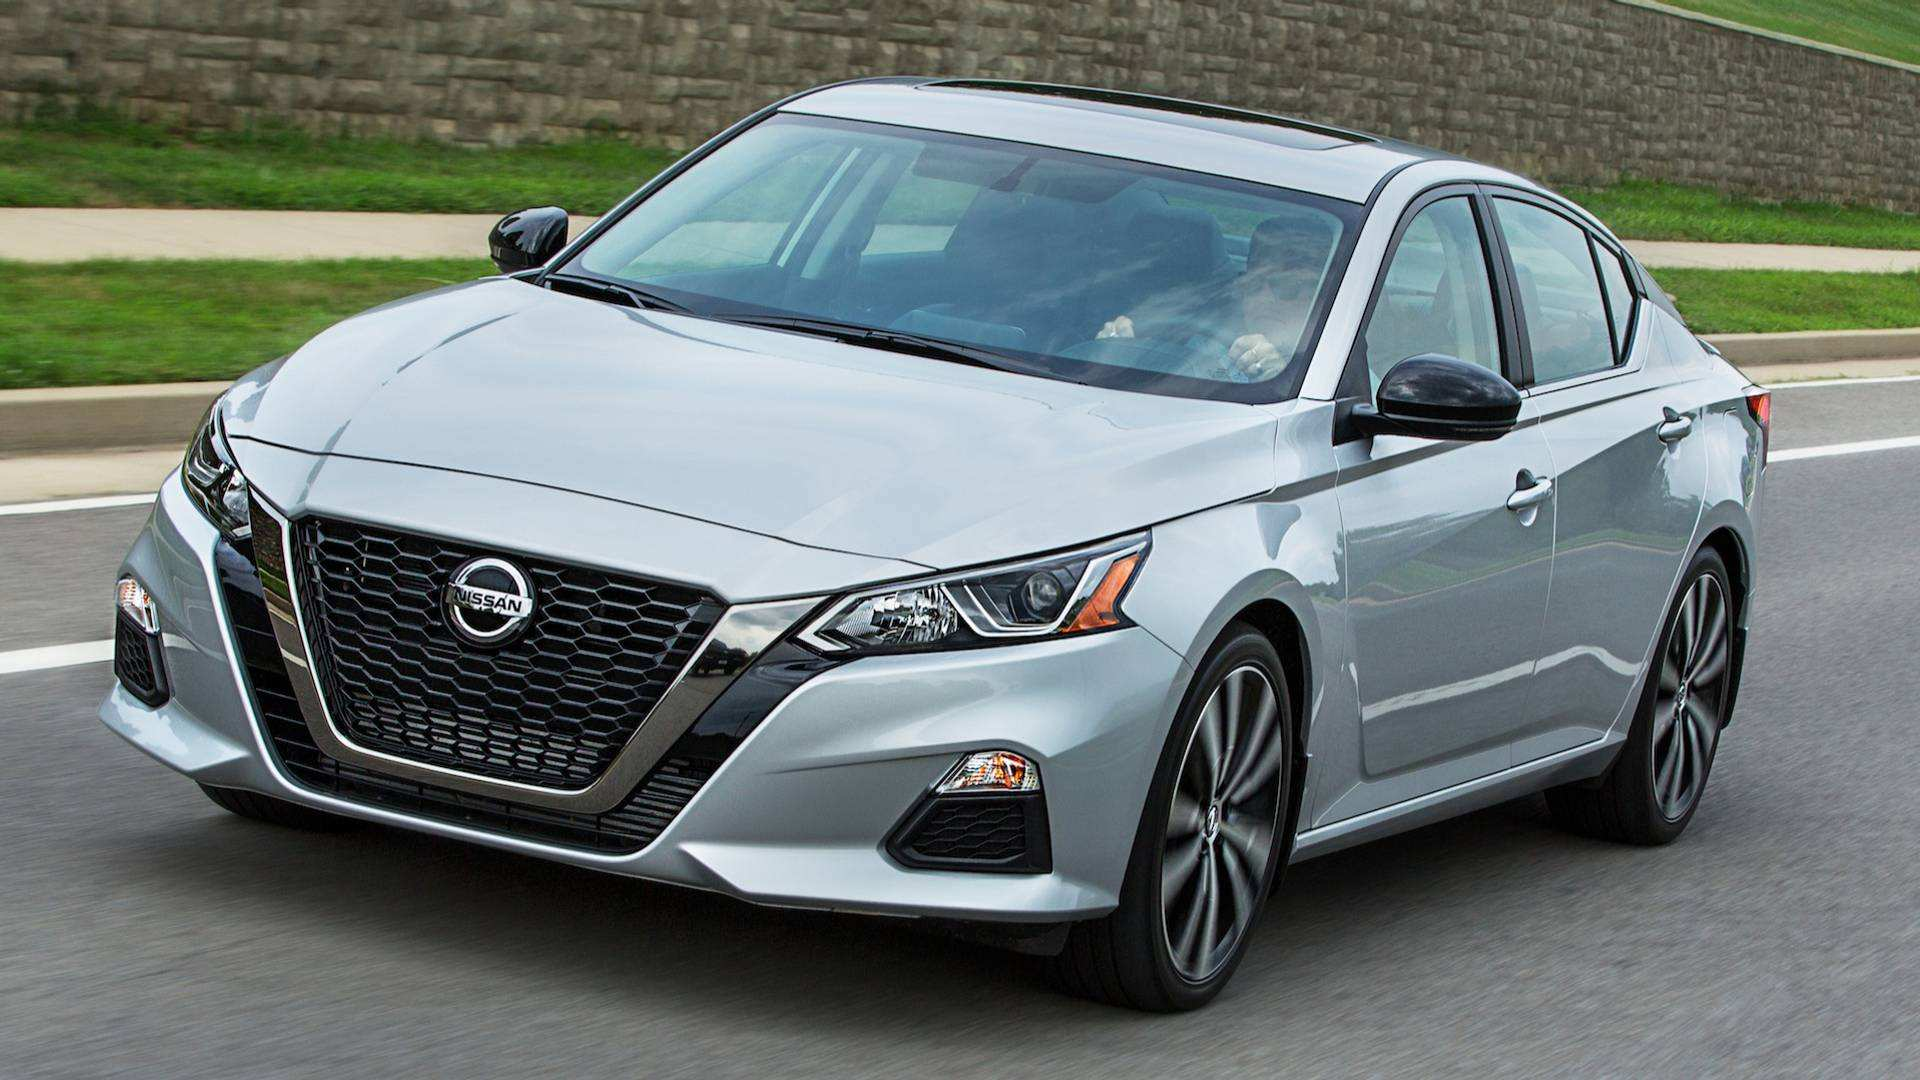 72 All New Nissan Altima 2019 Horsepower First Drive by Nissan Altima 2019 Horsepower